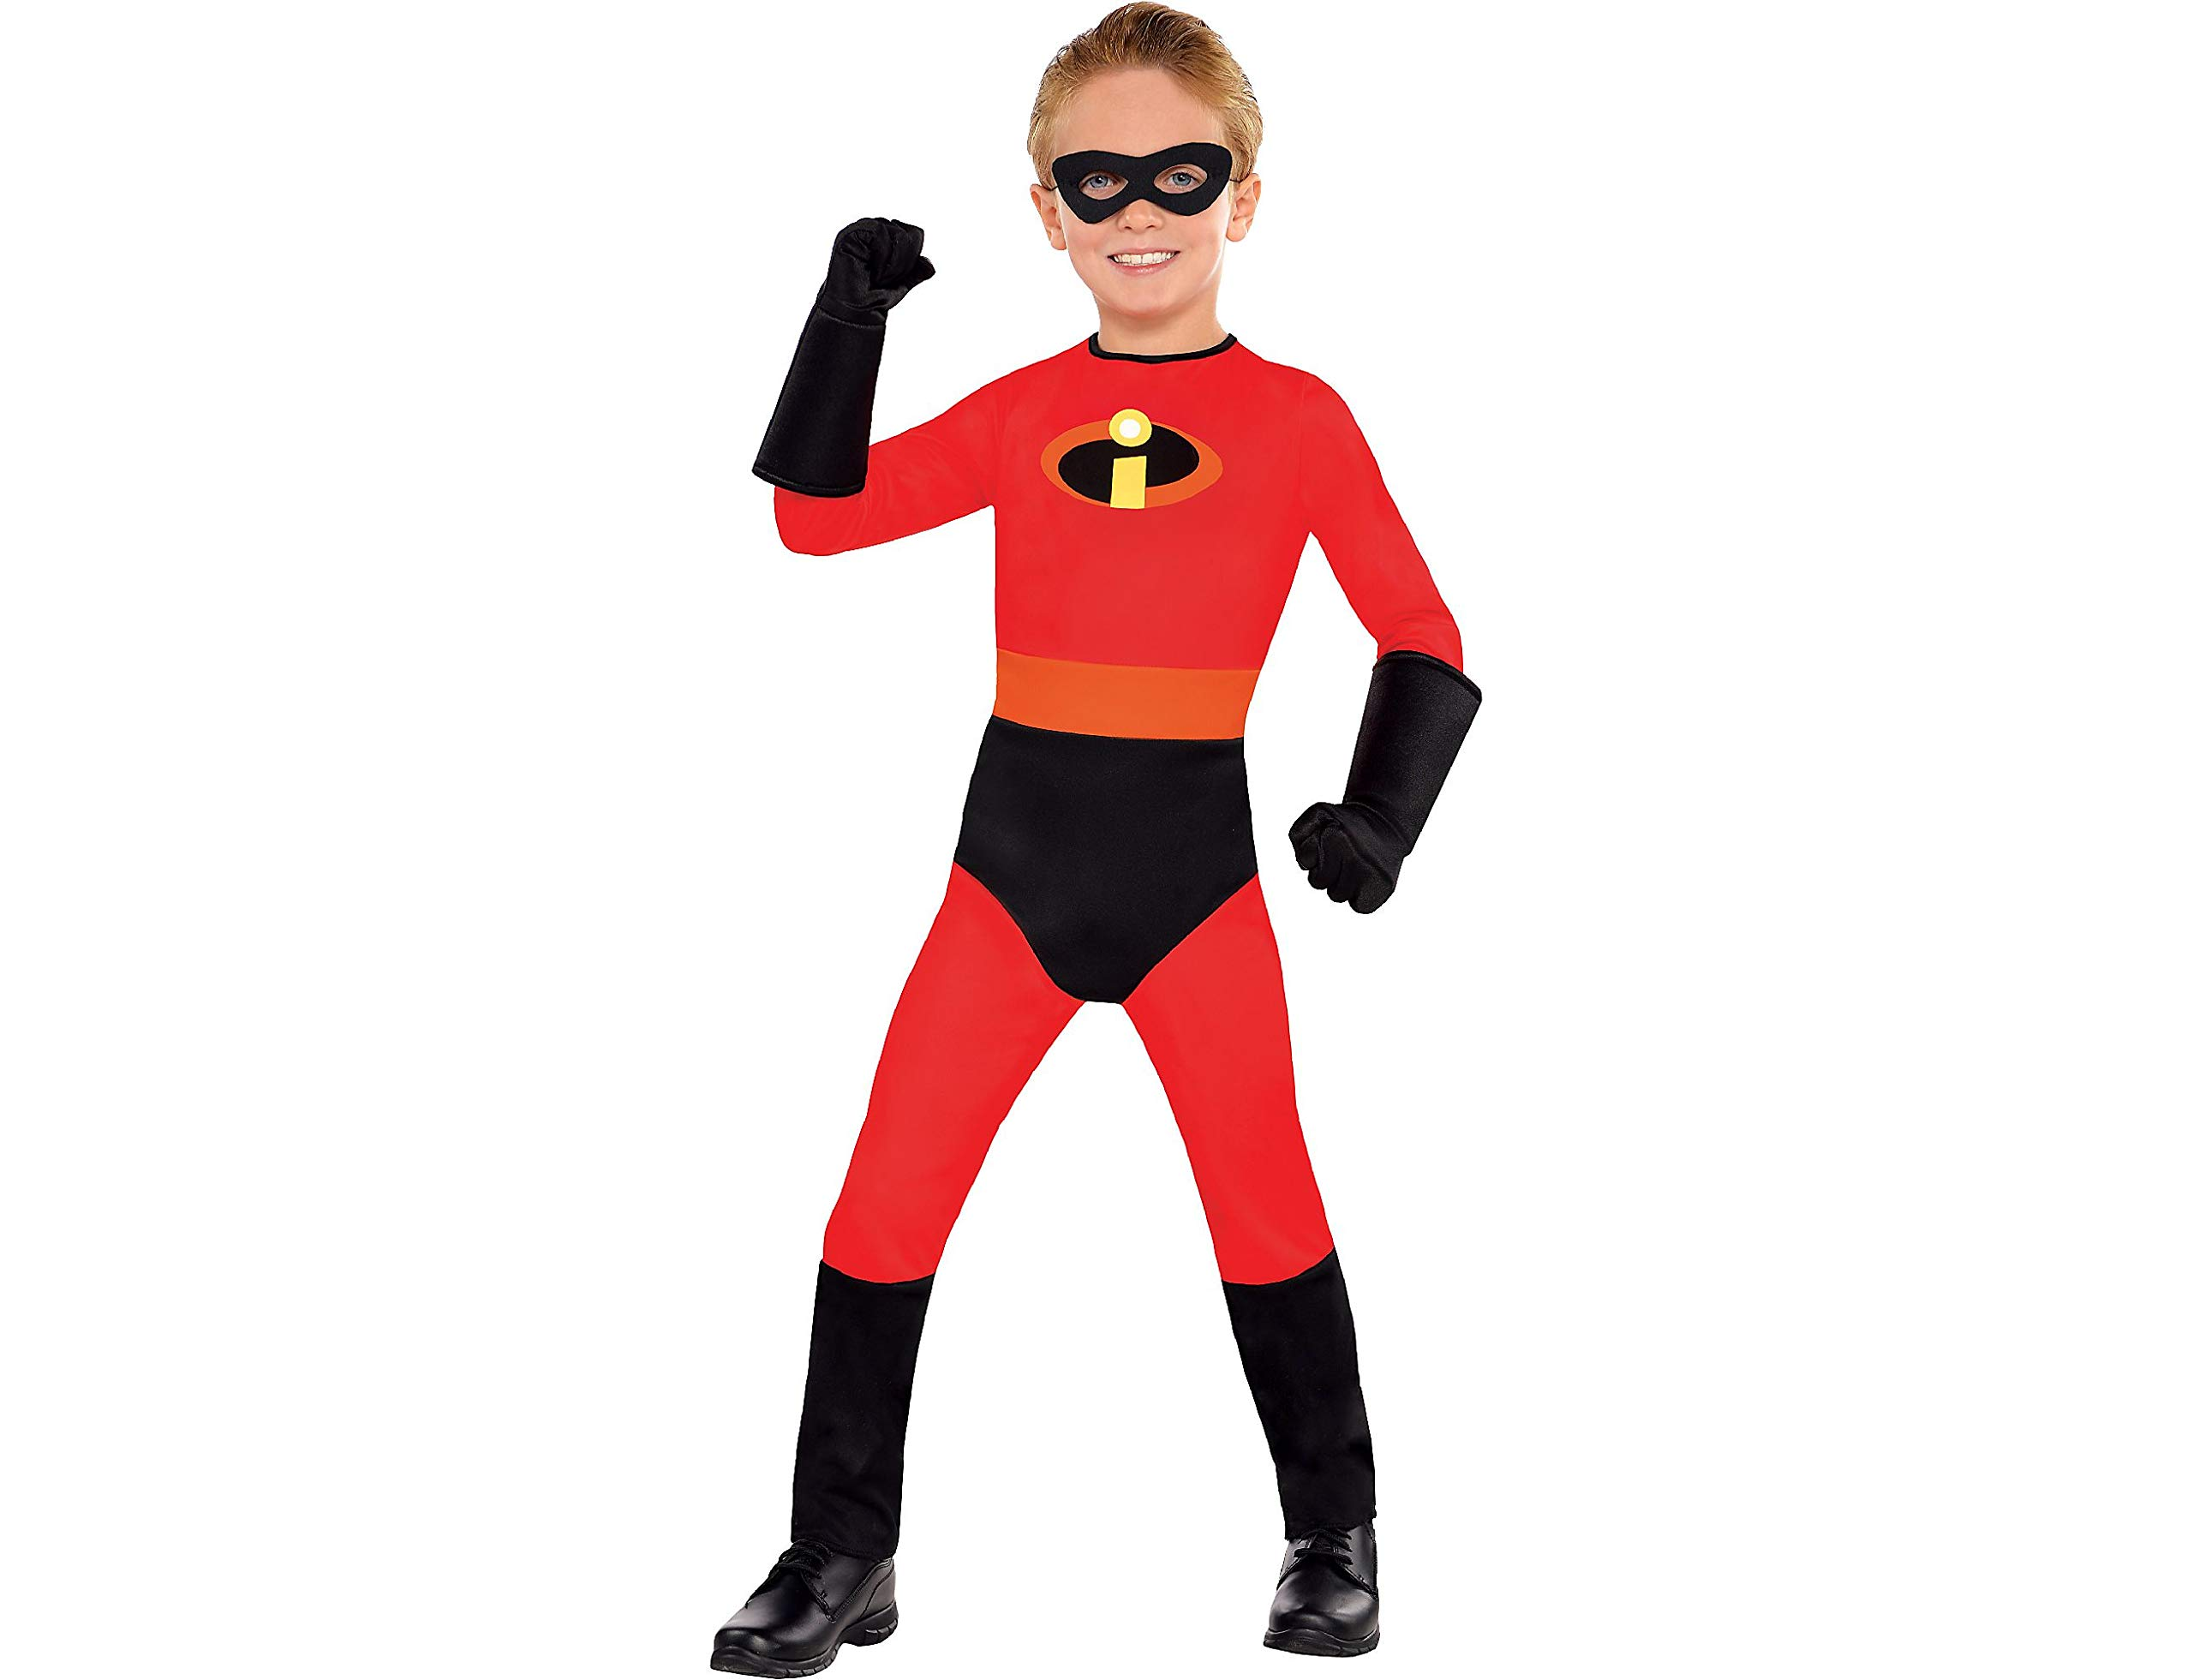 Party City The Incredibles Dash Halloween Costume for Boys, Medium, with Included Accessories